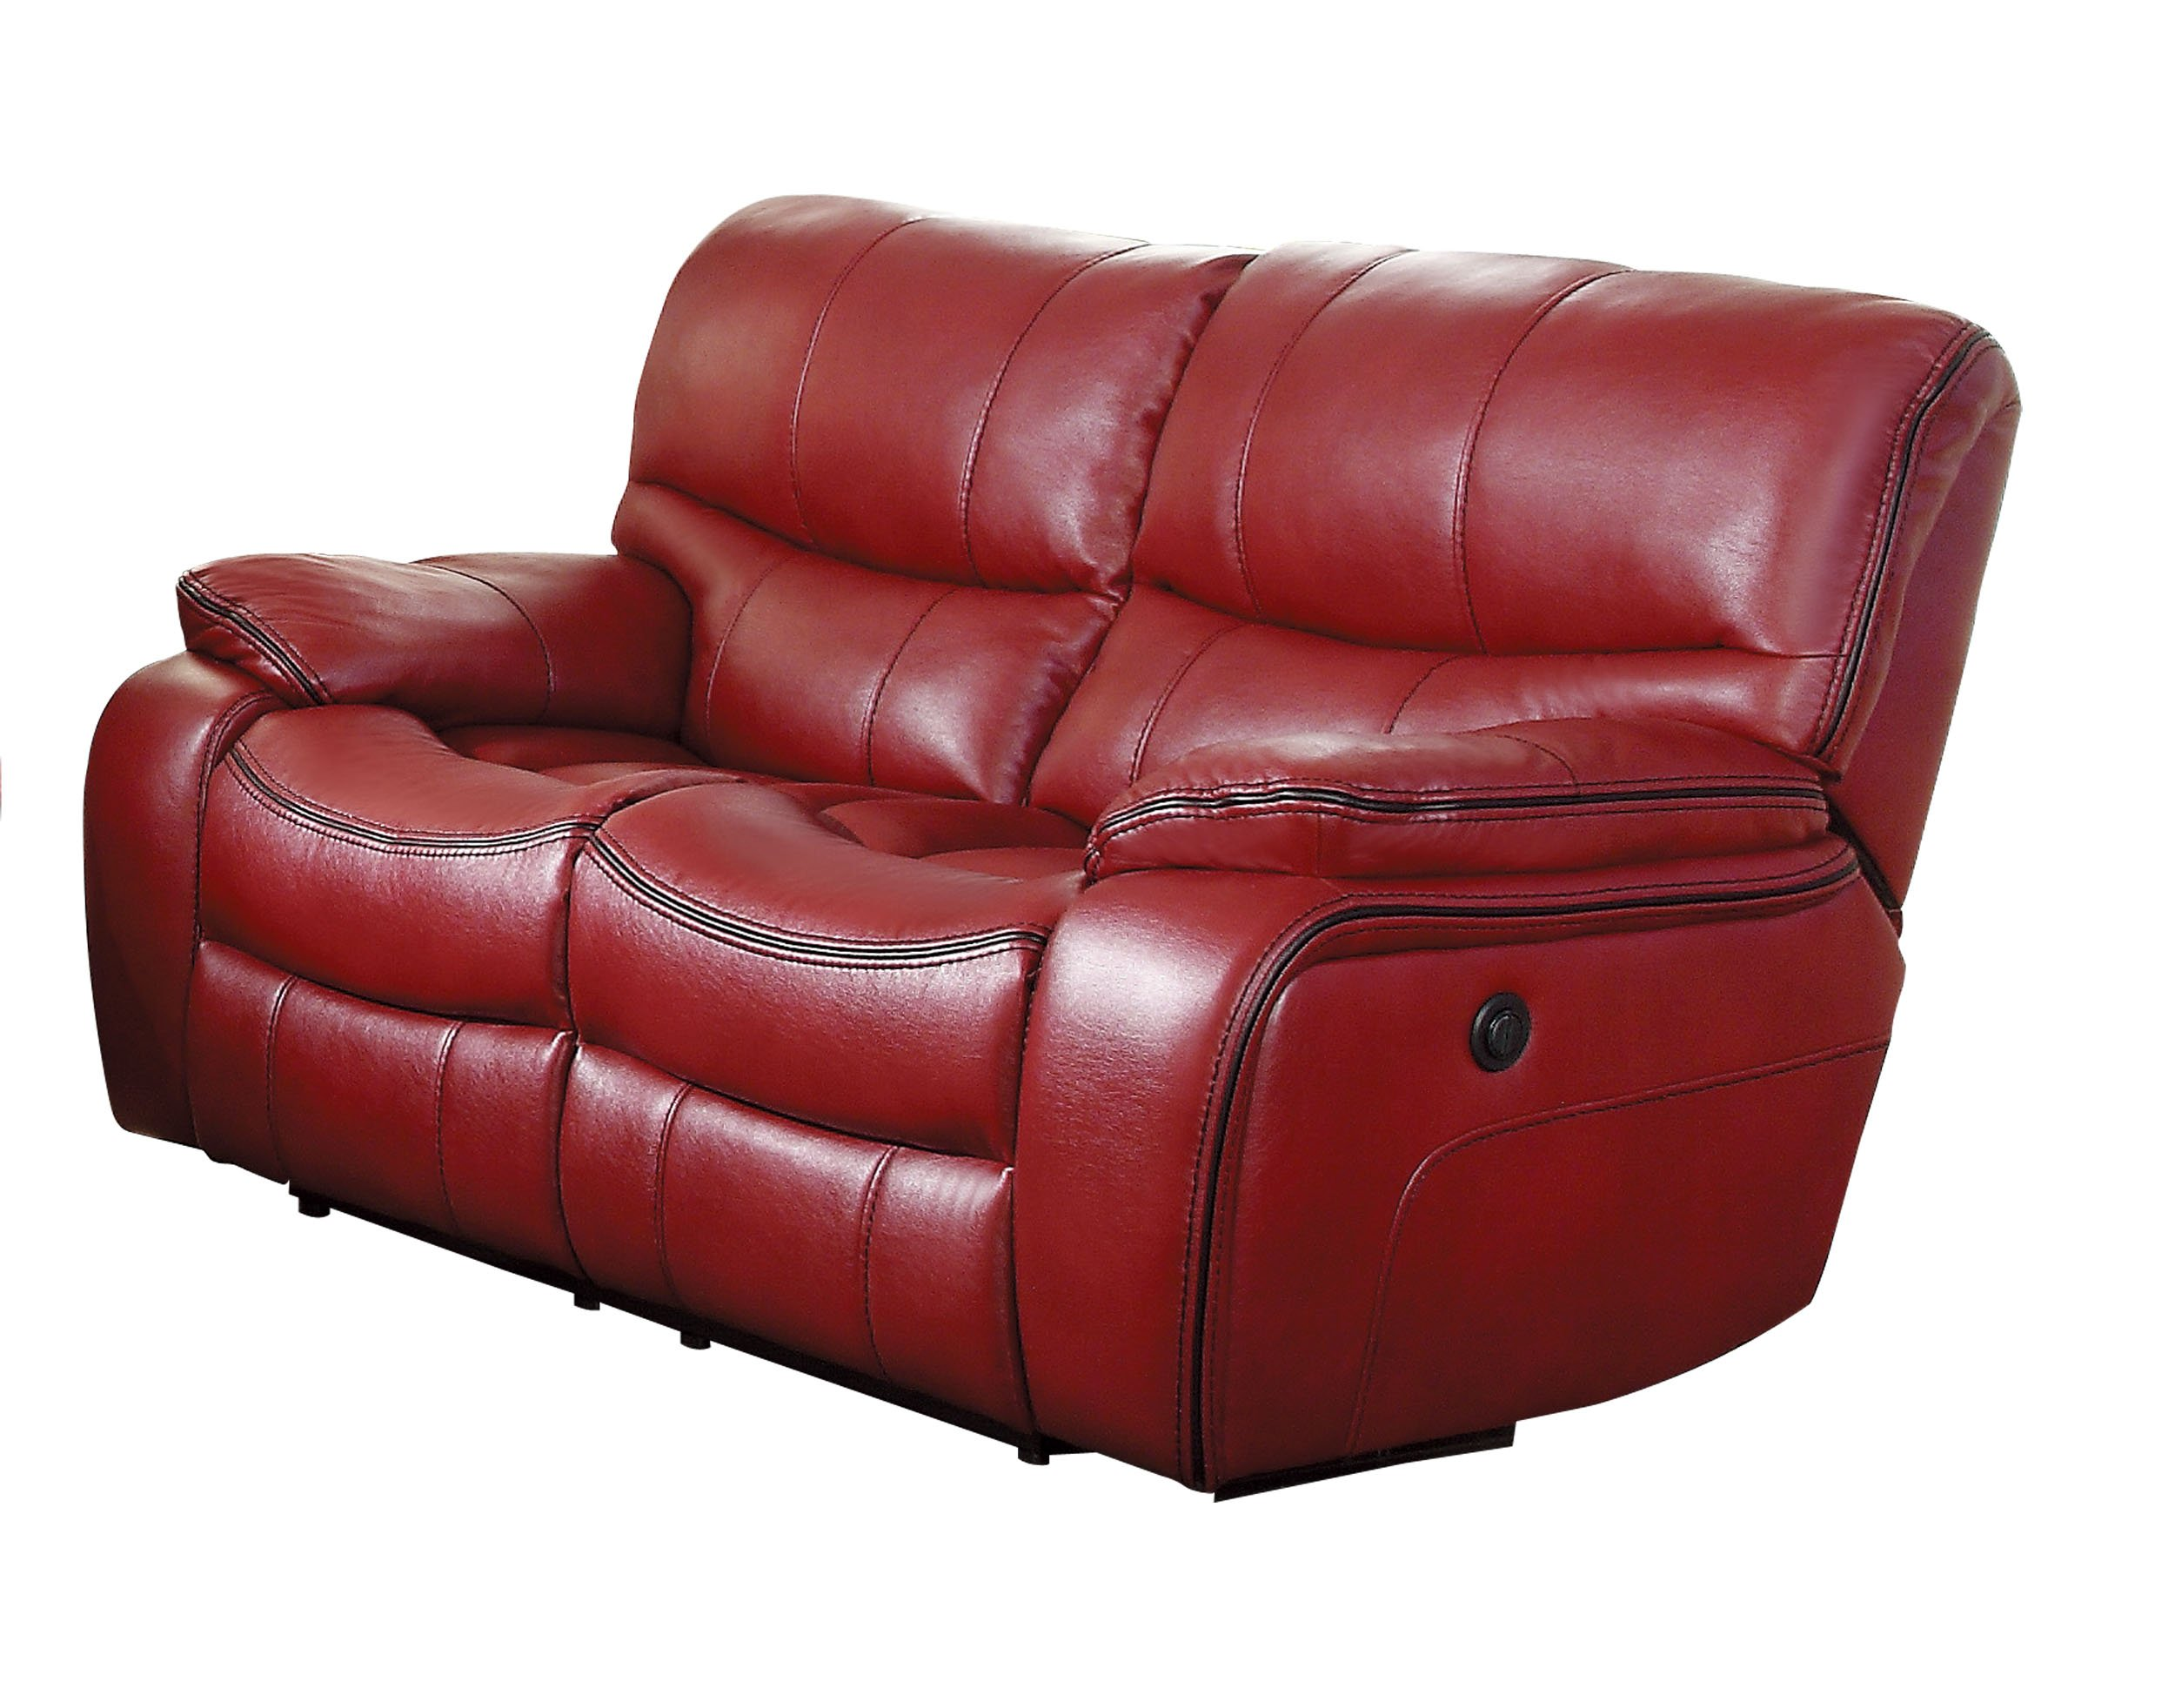 Homelegance Pecos Modern Design Power Double Reclining Love Seat Leather Gel Match, Red